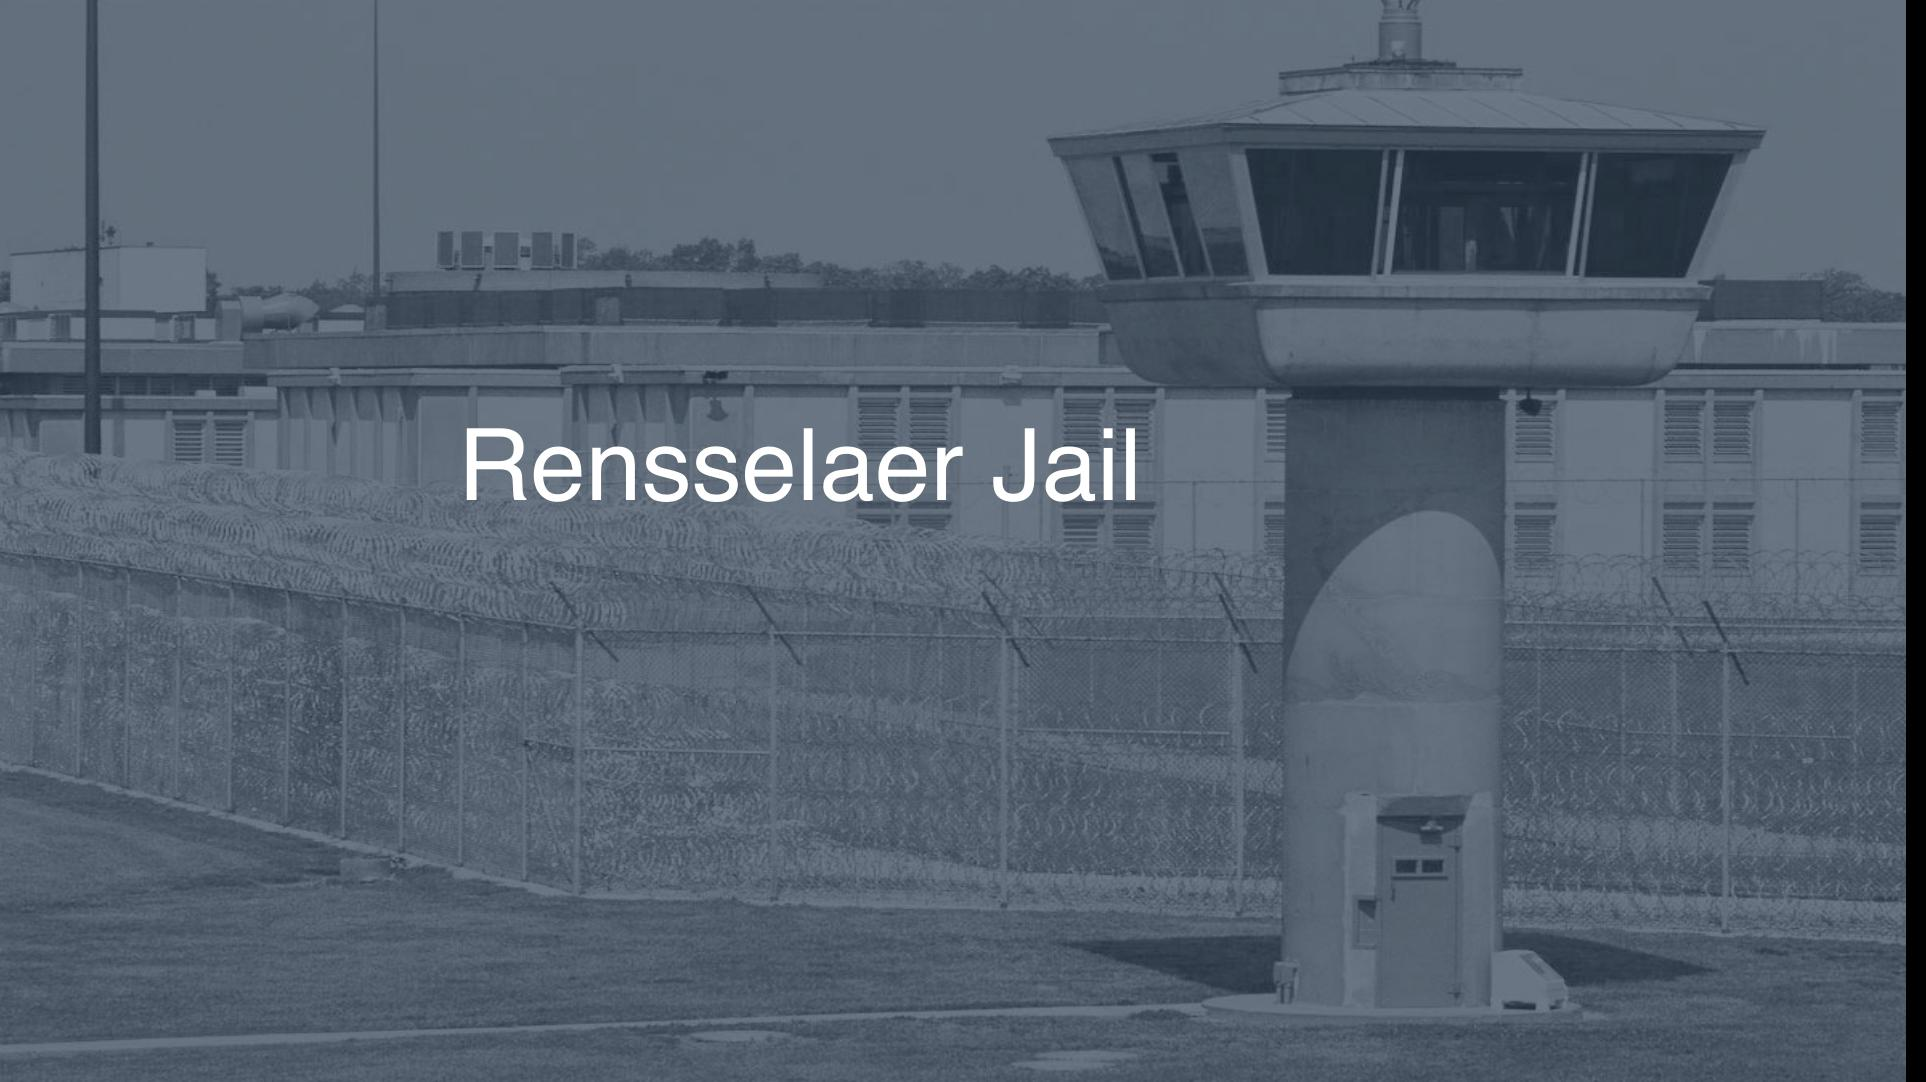 Rensselaer Jail | Pigeonly - Inmate Search, Locate & Connect